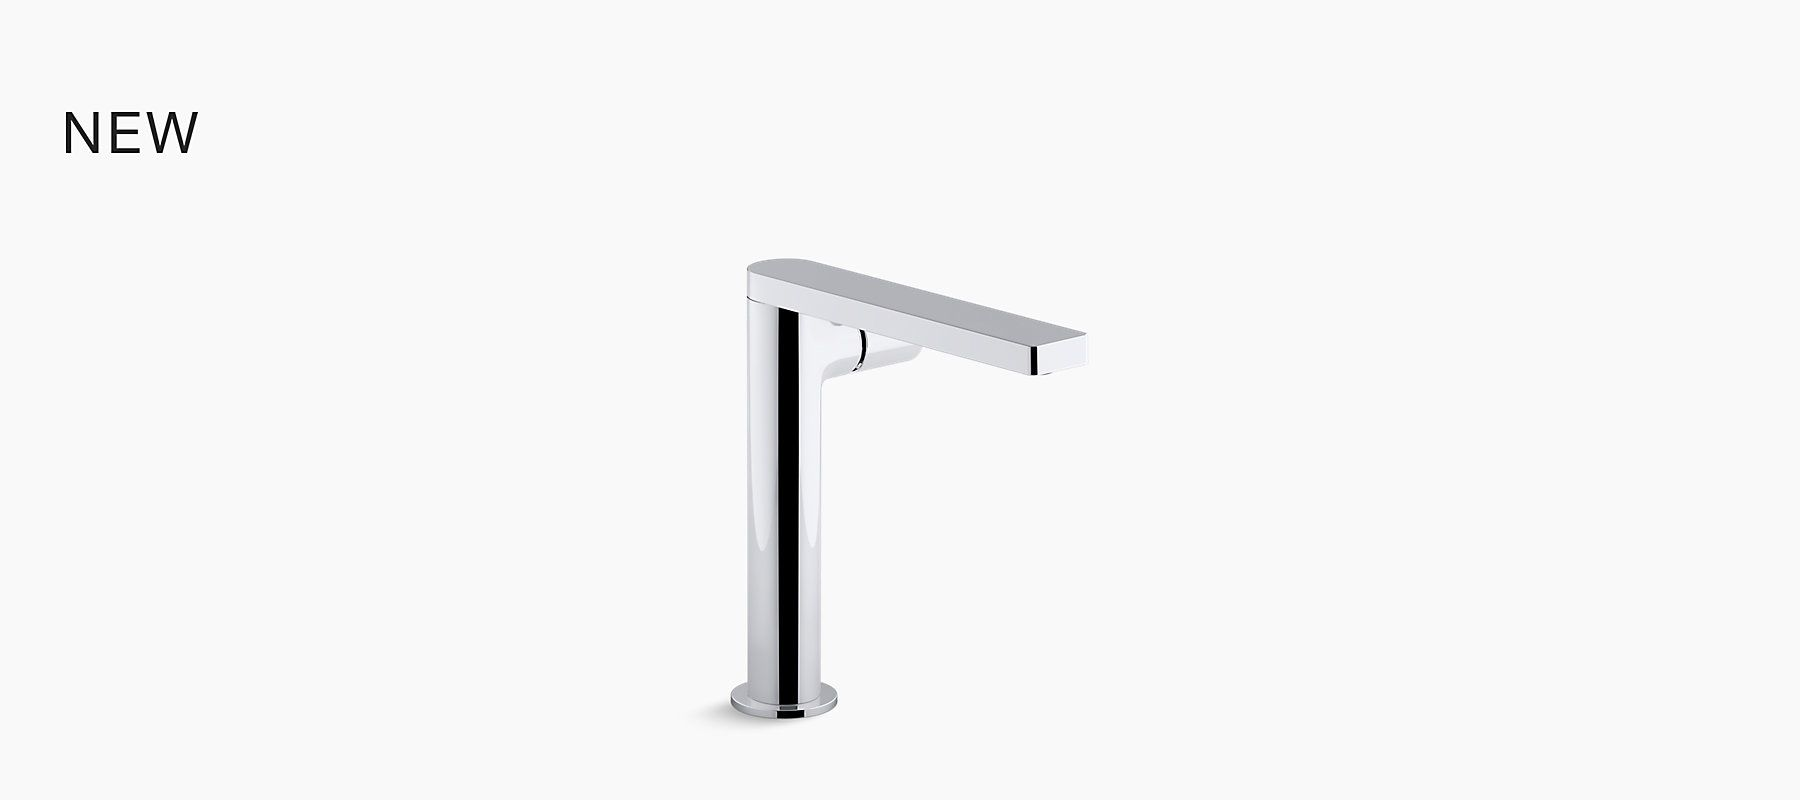 K Composed Pure Handle Bathroom Sink Faucet KOHLER N - Kohler bathroom faucet handles